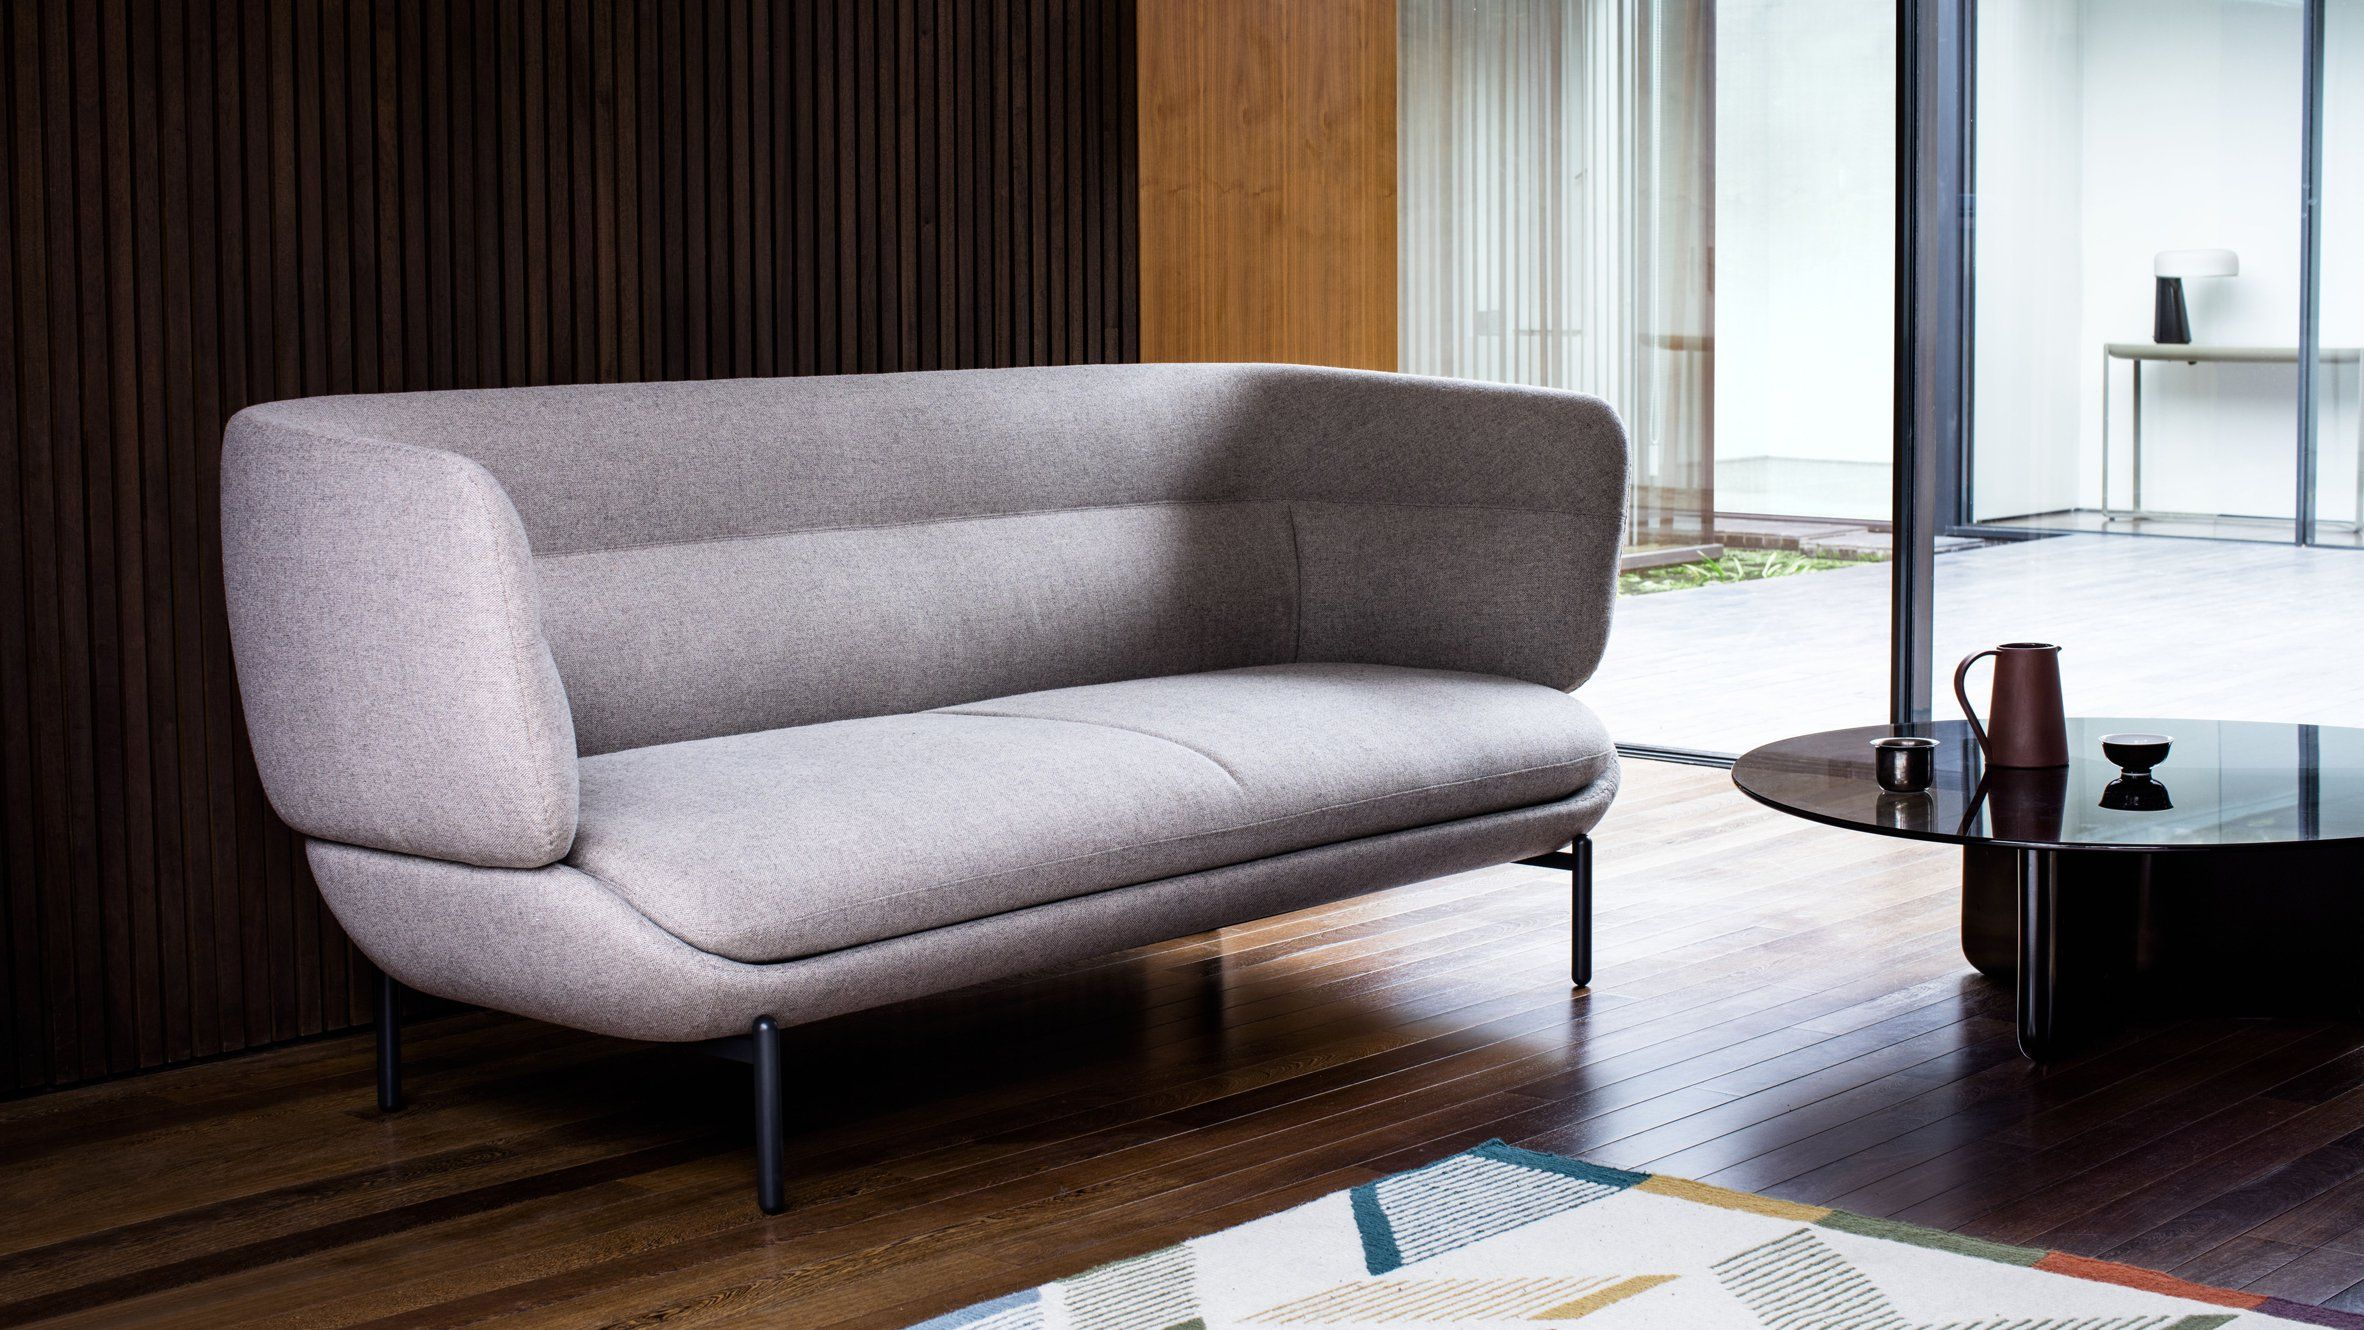 Attractive Doshi Levien Furniture Collection For John Lewis